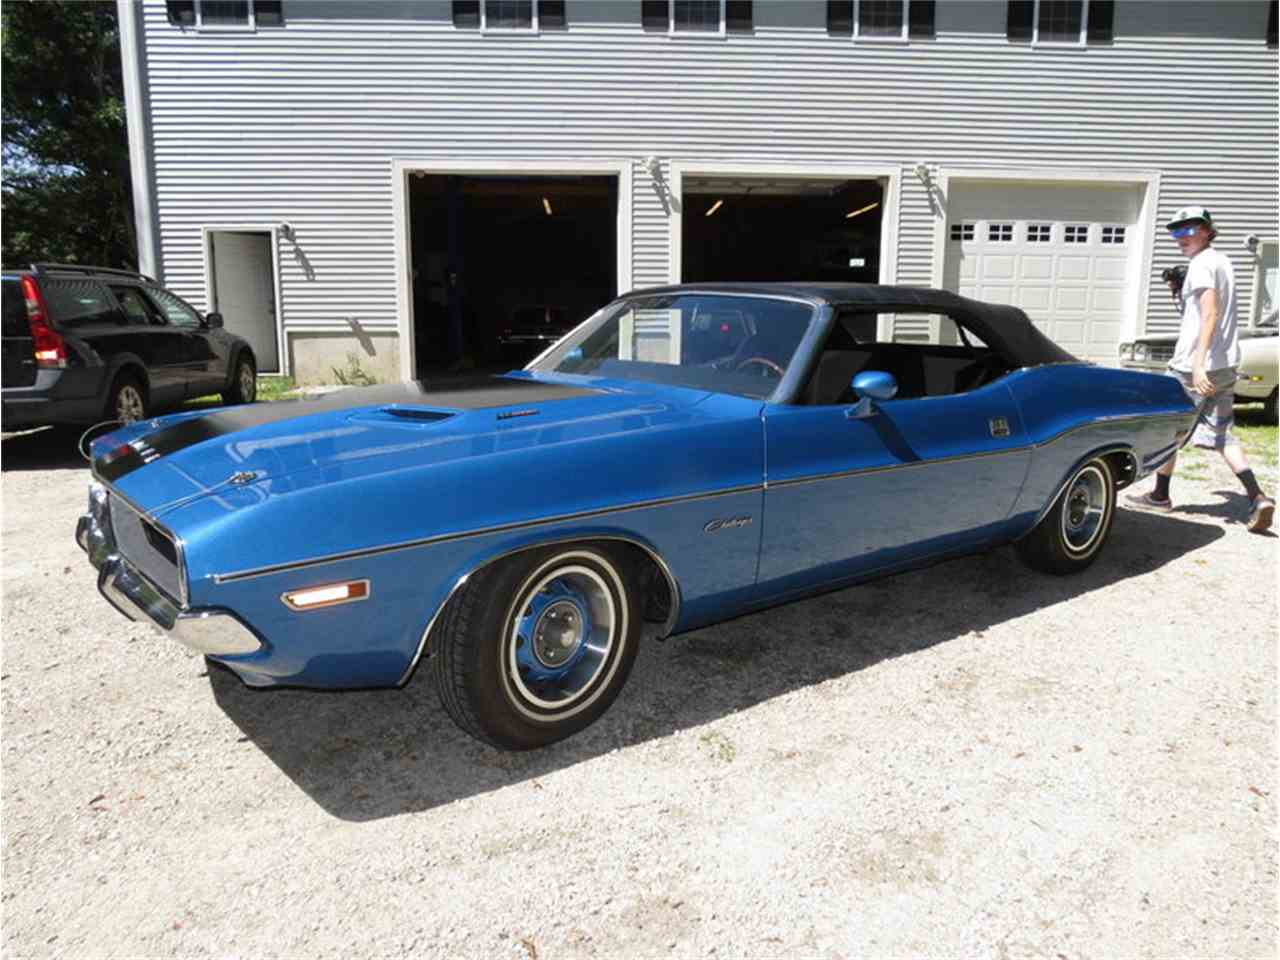 Large Picture of Classic '71 Dodge Challenger located in Massachusetts - $45,900.00 Offered by Silverstone Motorcars - J0QS